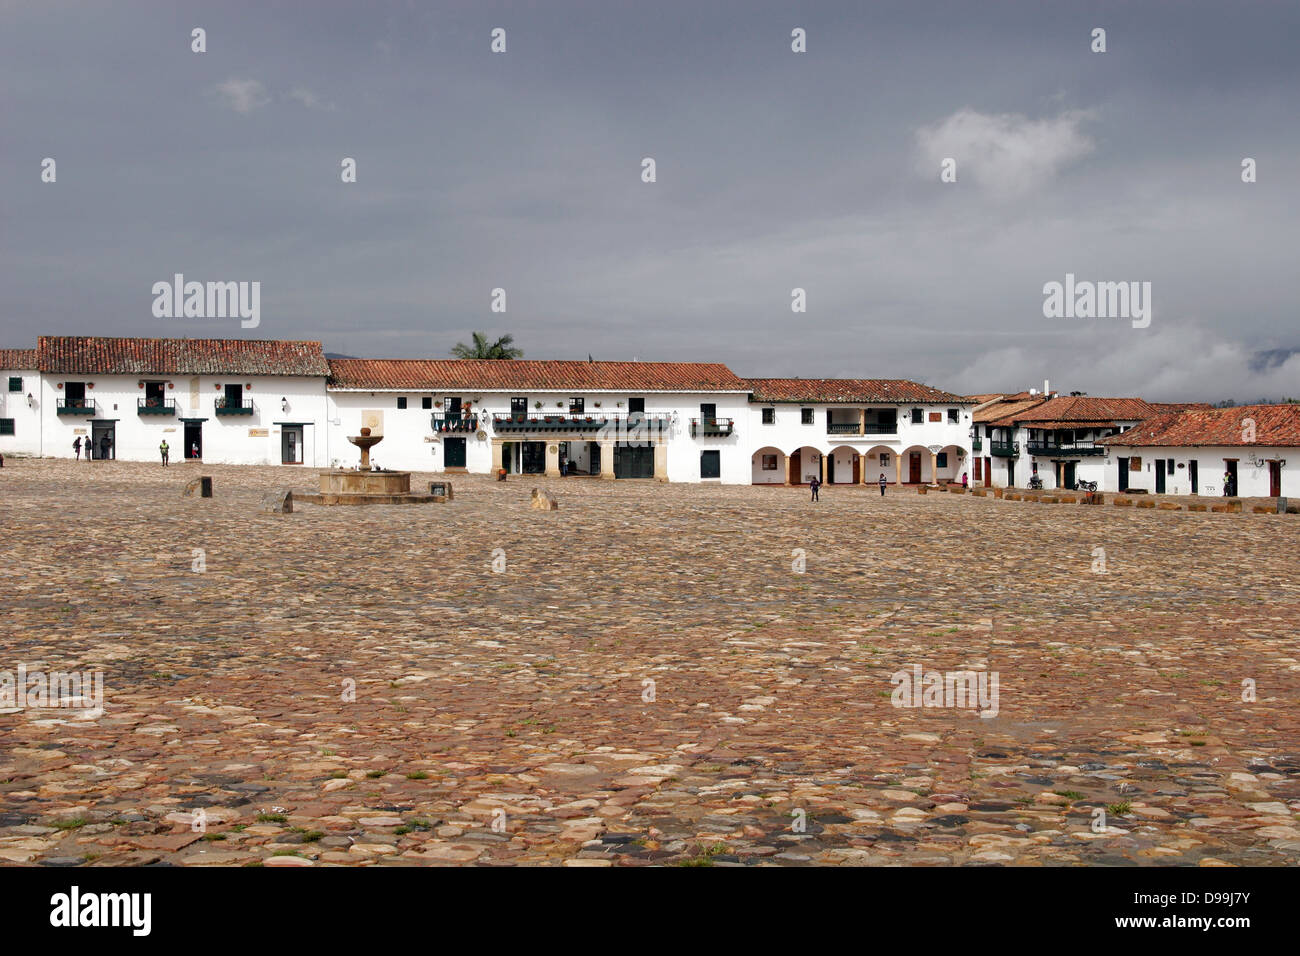 Black Tile Roof Village House Stock Photos & Black Tile ...